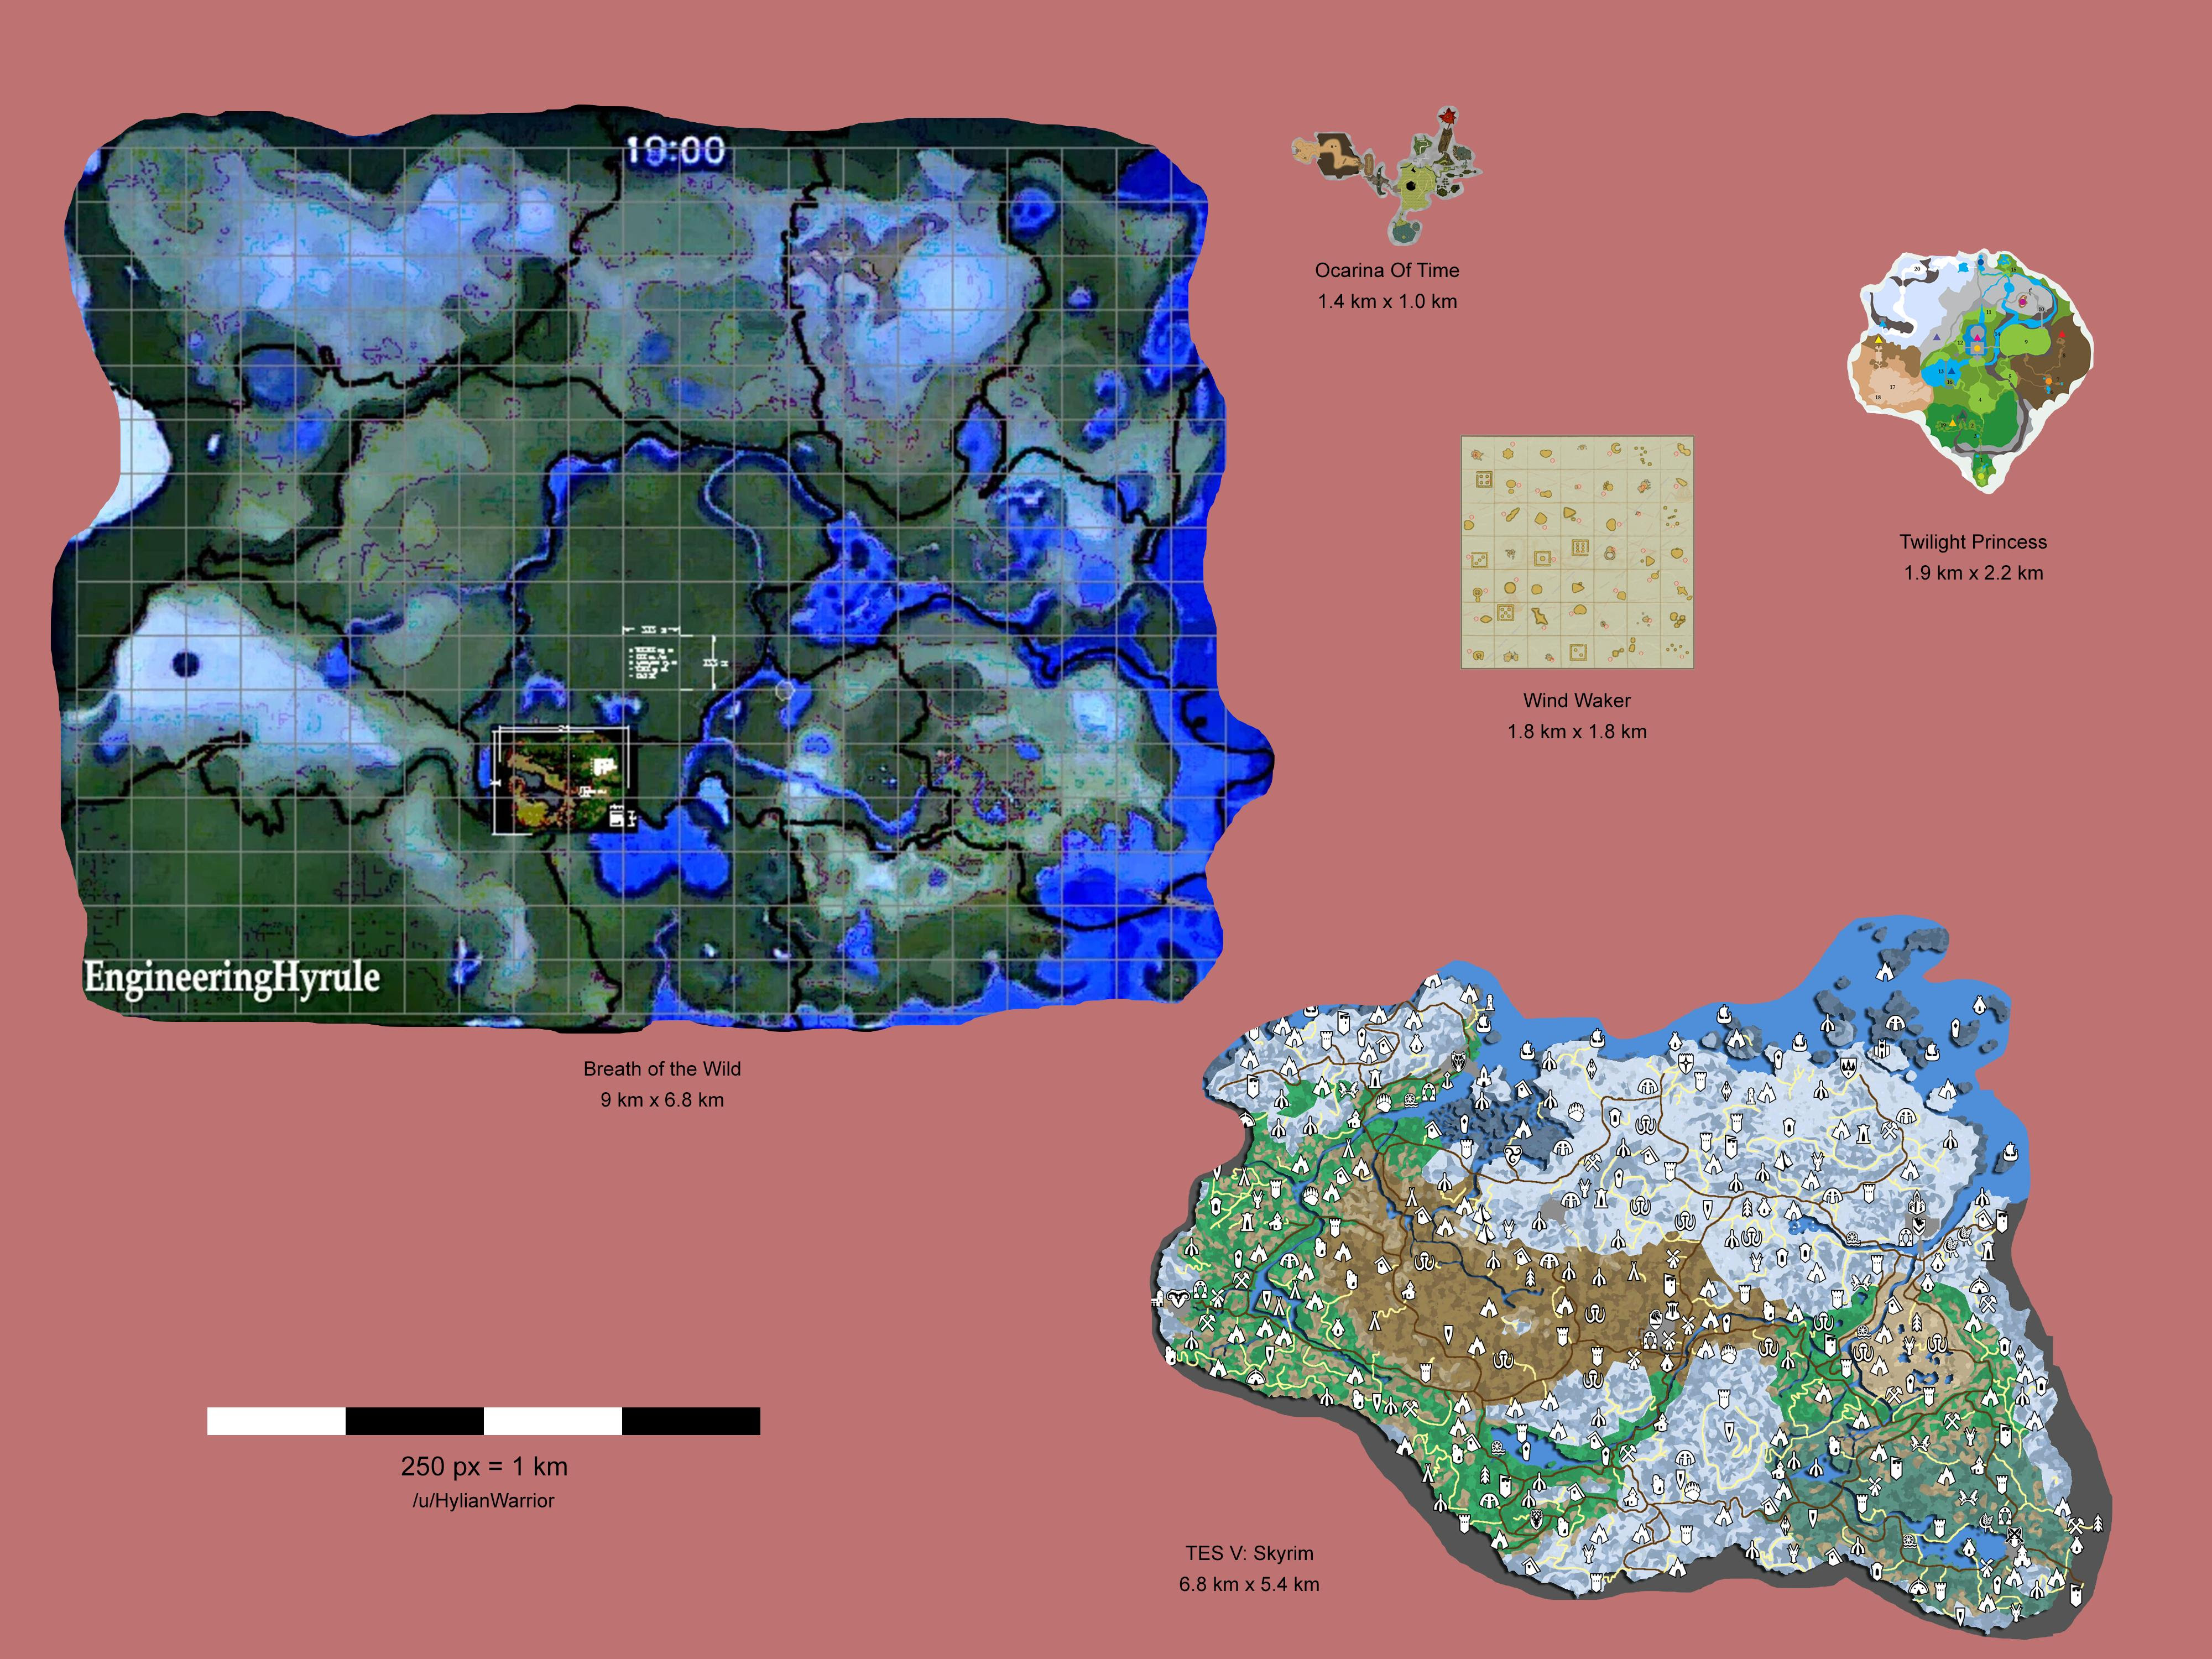 The Size Of Botw Breathofthewild